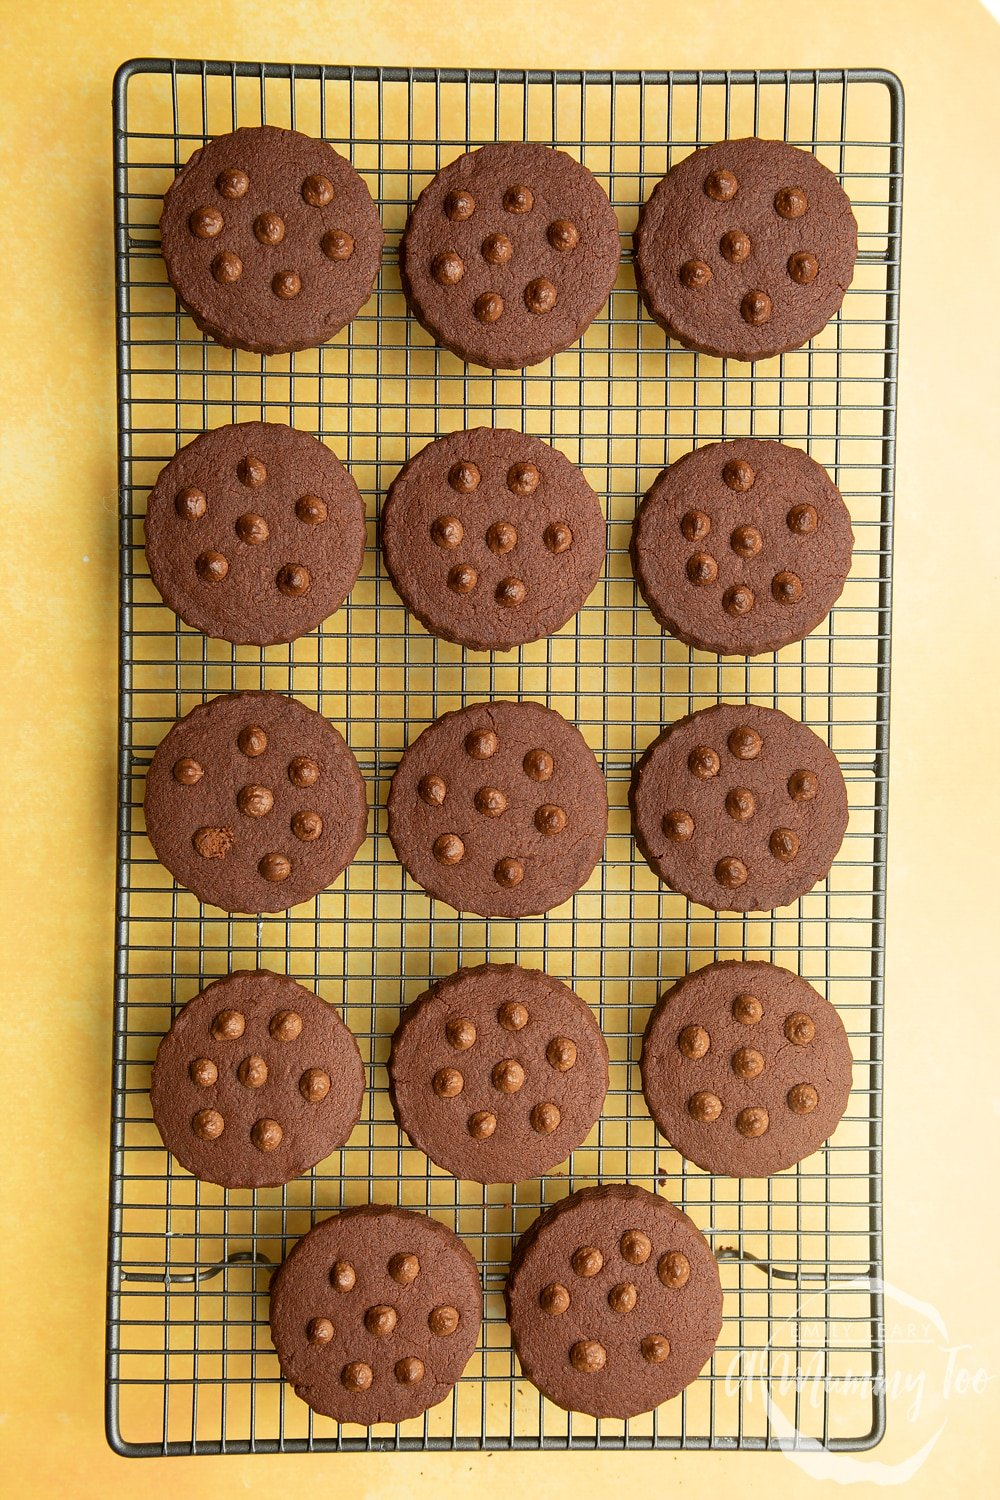 Chocolate shortbread cookies with chocolate chips cooling on a wire rack.